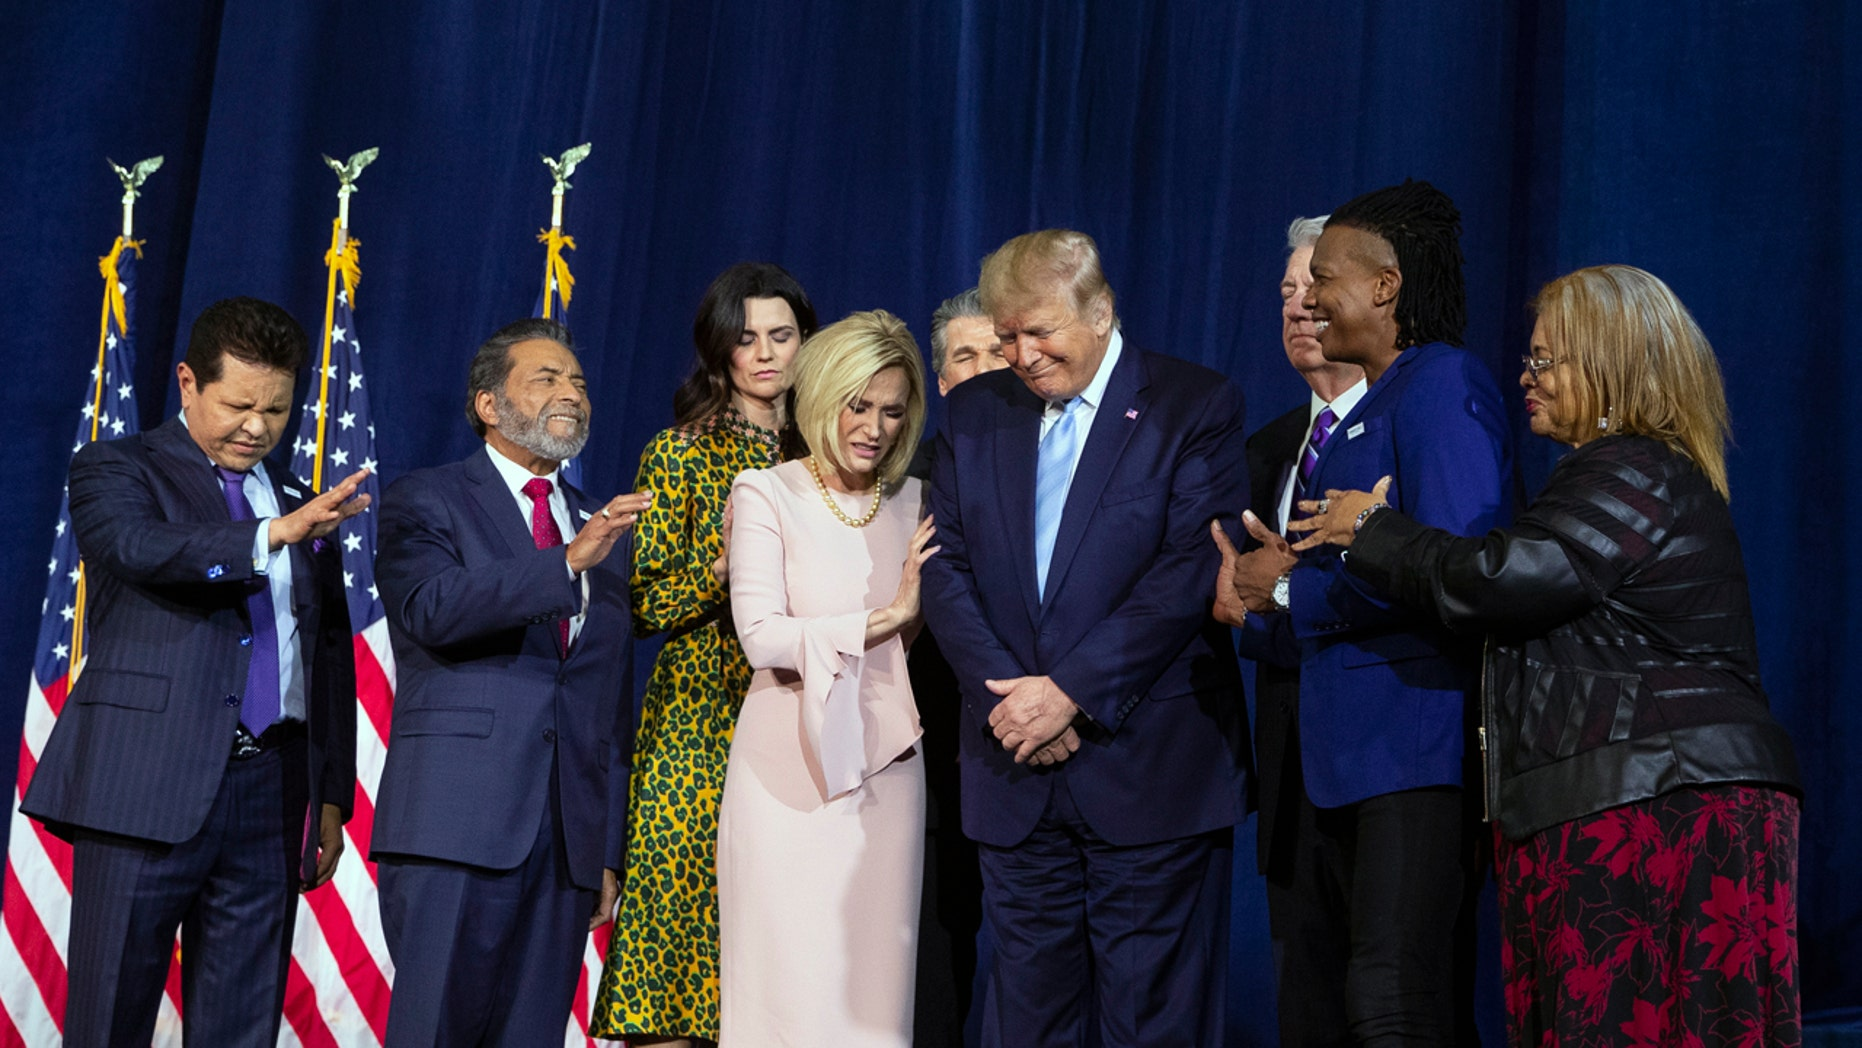 """Faith leaders pray over President Donald Trump during an """"Evangelicals for Trump Coalition Launch"""" at King Jesus International Ministry, Friday, Jan. 3, 2020, in Miami. (AP Photo/ Evan Vucci)"""